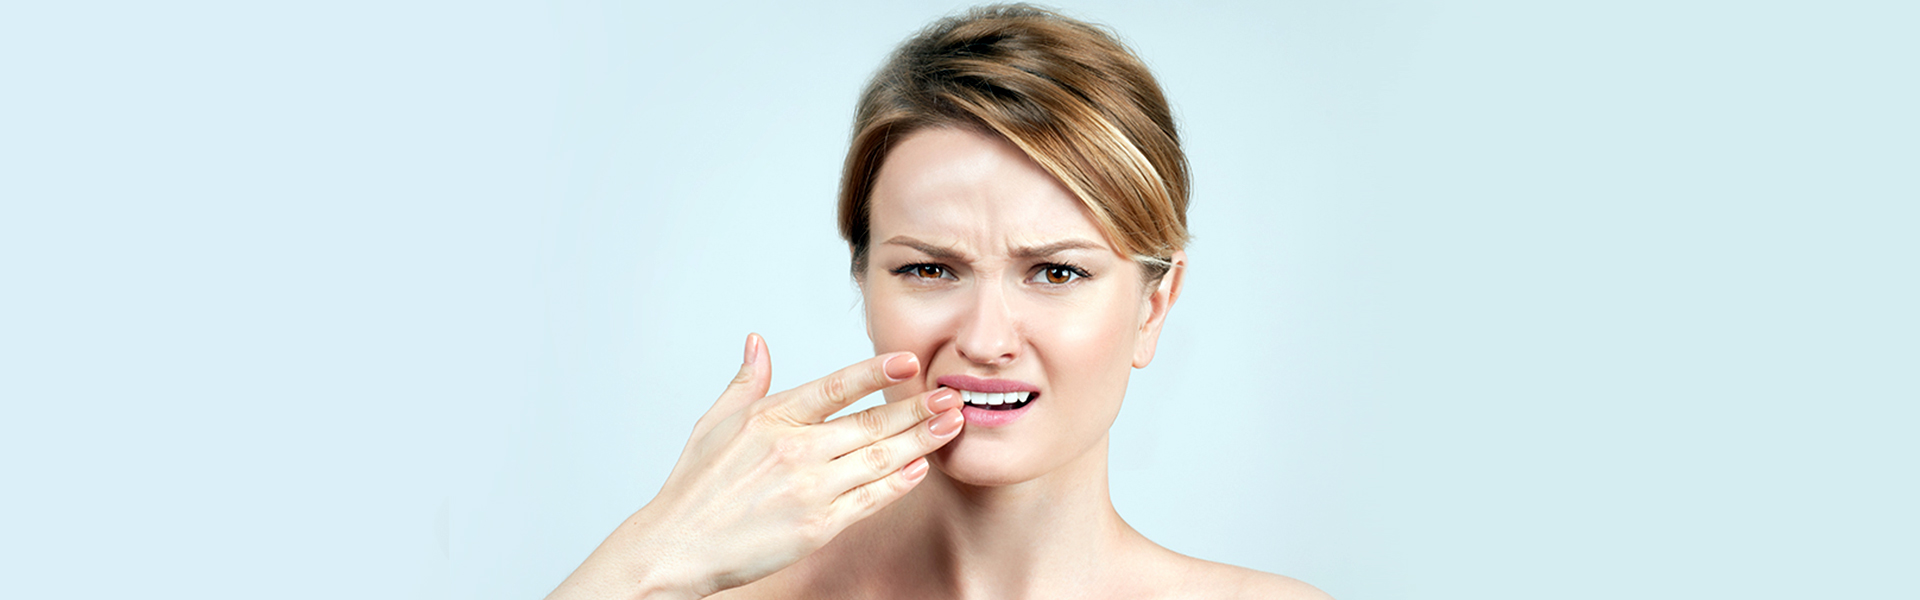 Tips for Managing Oral Hygiene After Wisdom Tooth Extractions